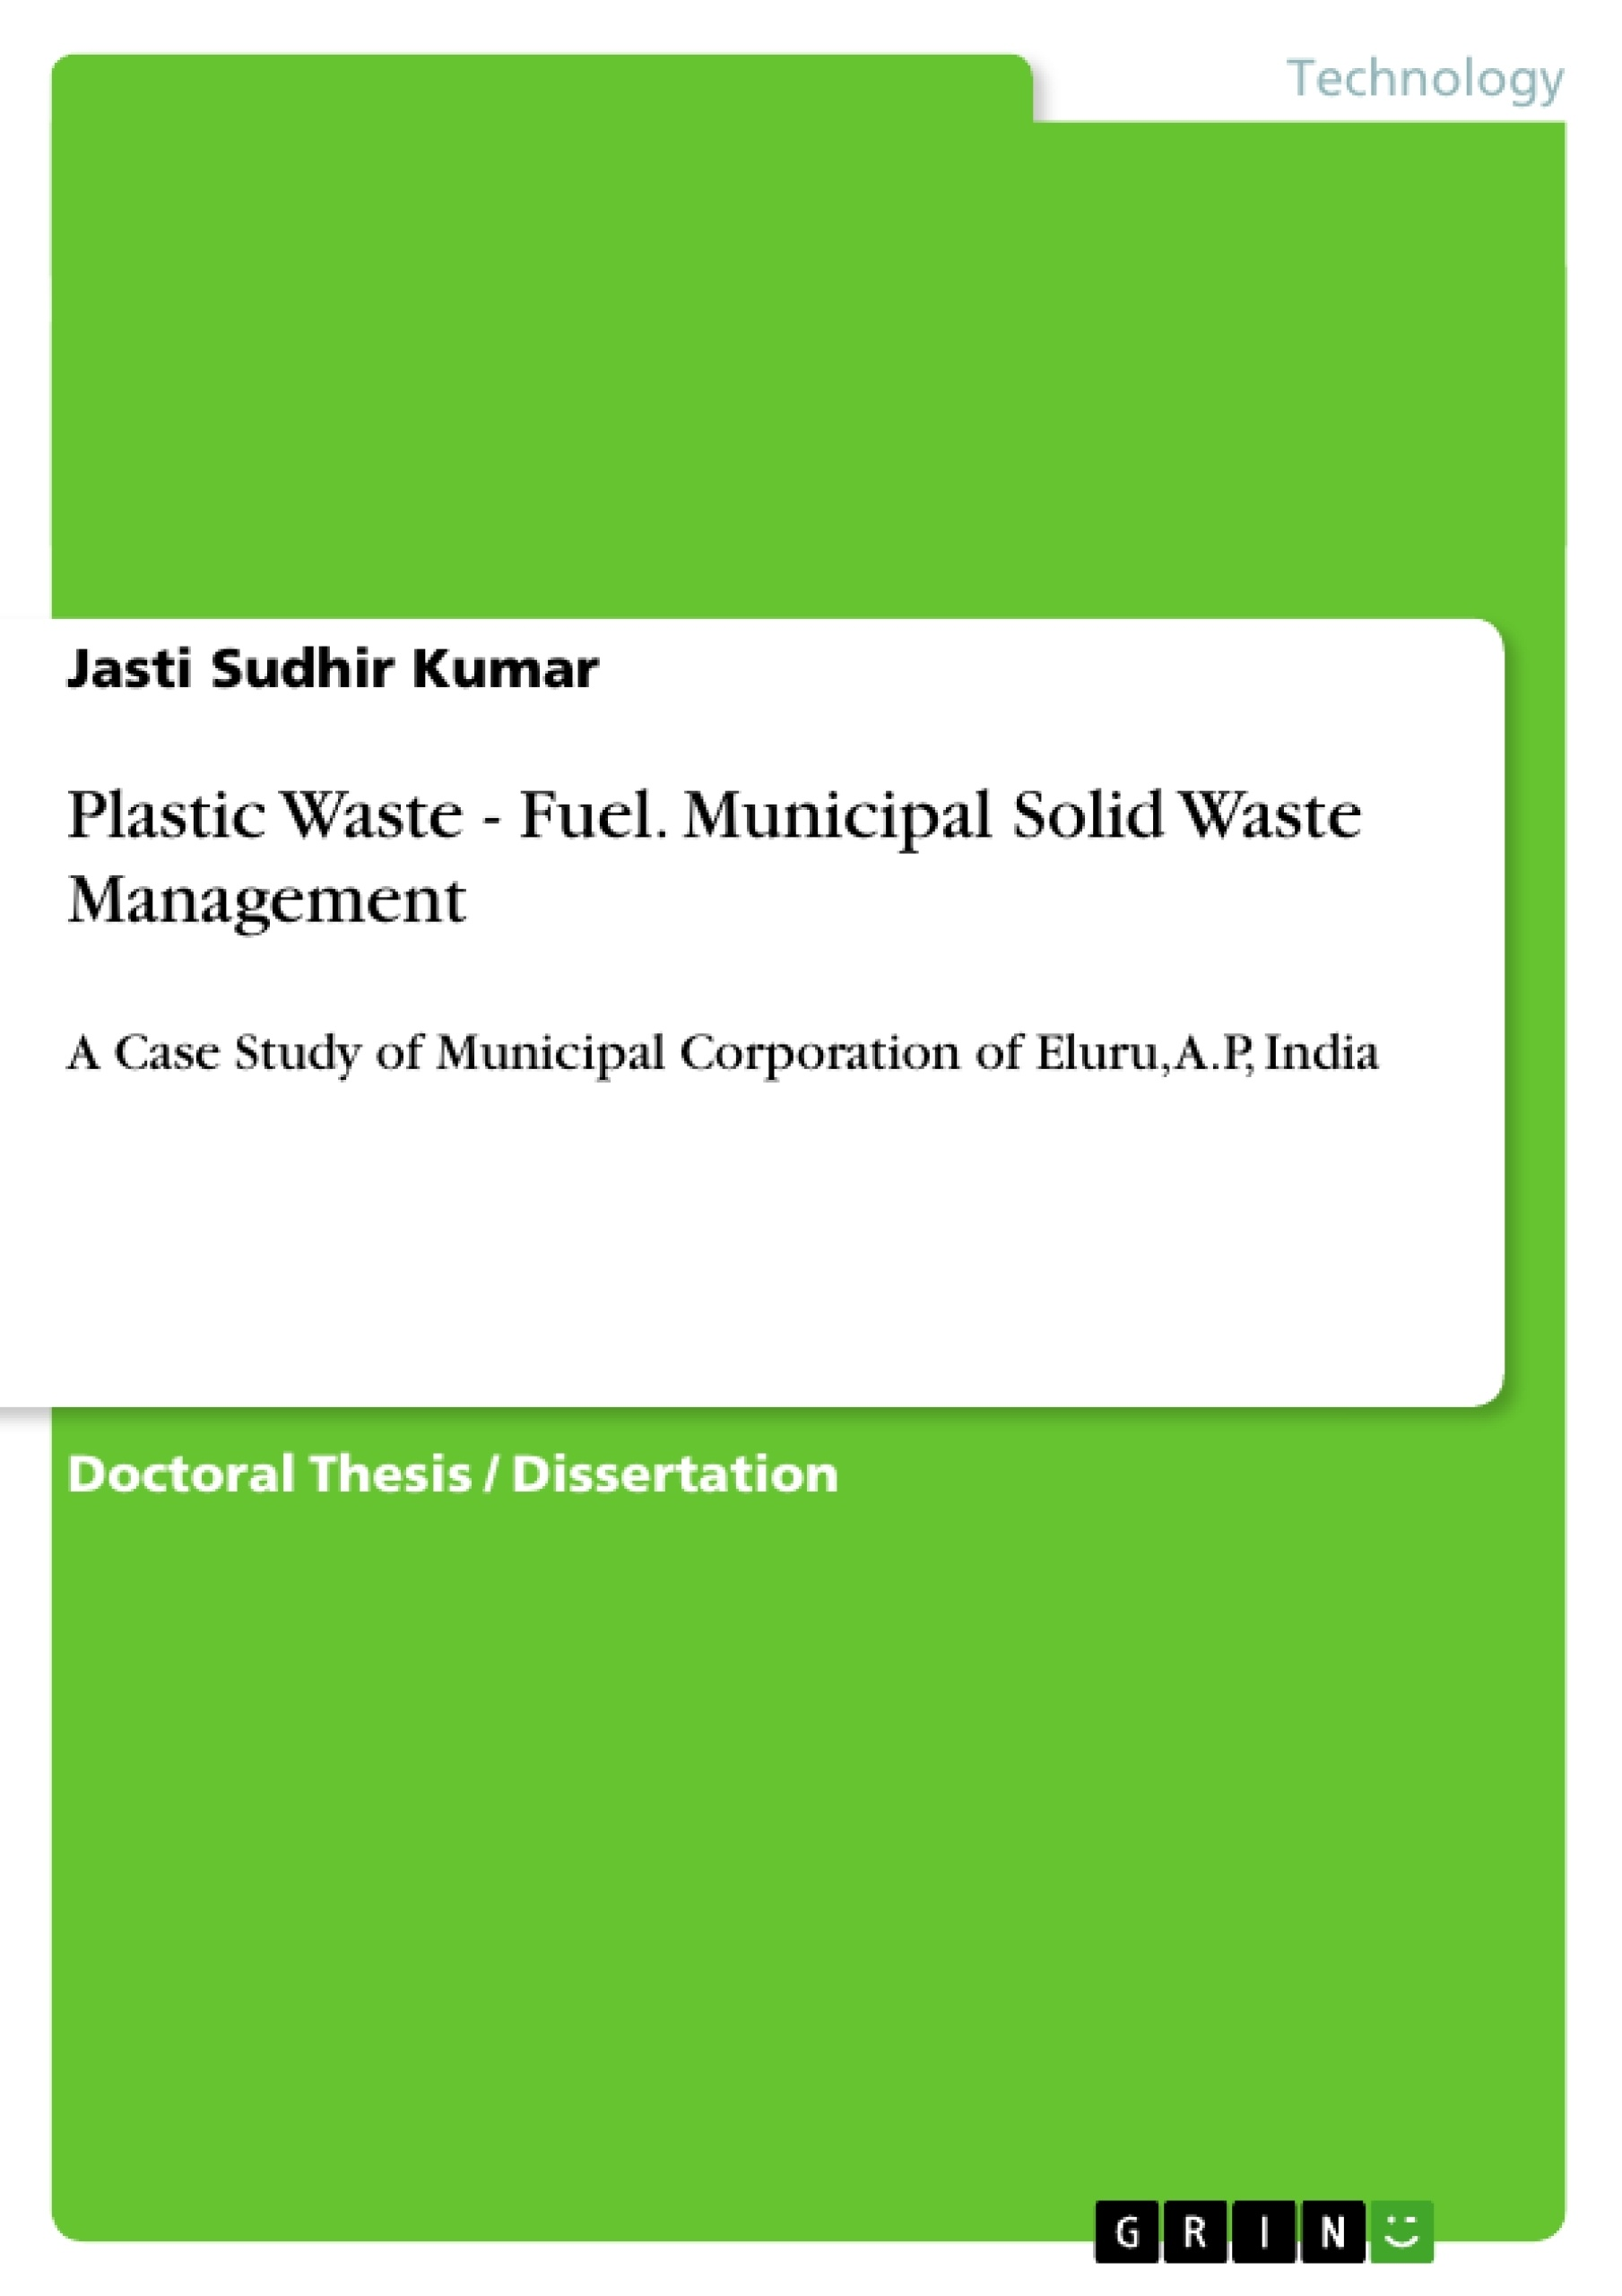 master thesis in waste management Mastersthesiswritingcom helps students write custom  if you are about to get a master's or doctoral degree and face  management thesis.